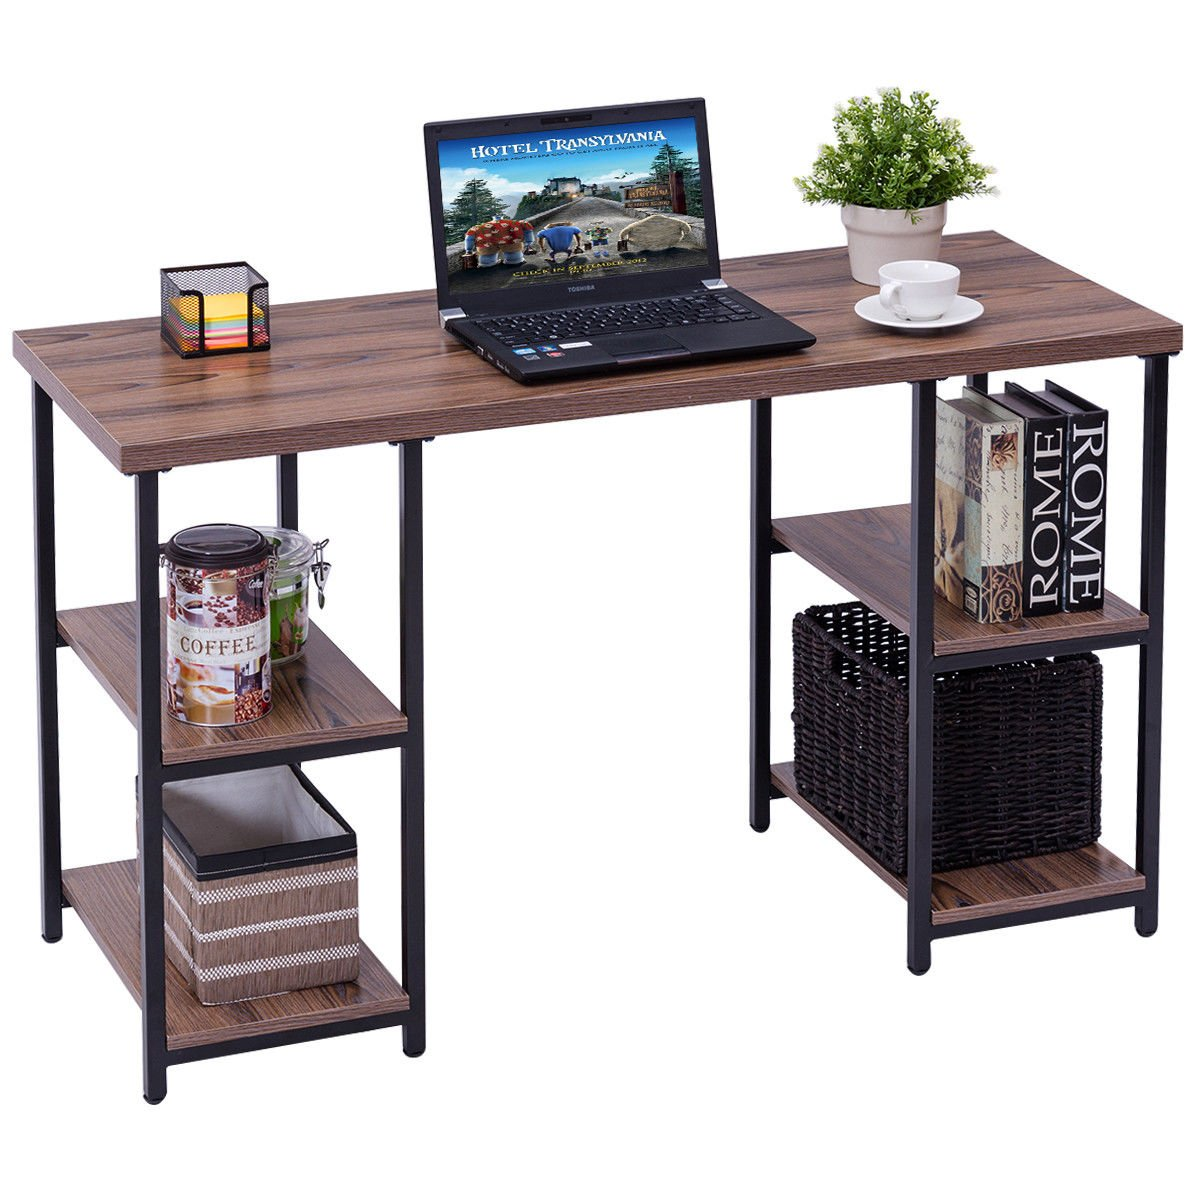 TANGKULA Computer Desk Home Office Metal Frame Laptop PC Desk Writing Table with Shelves